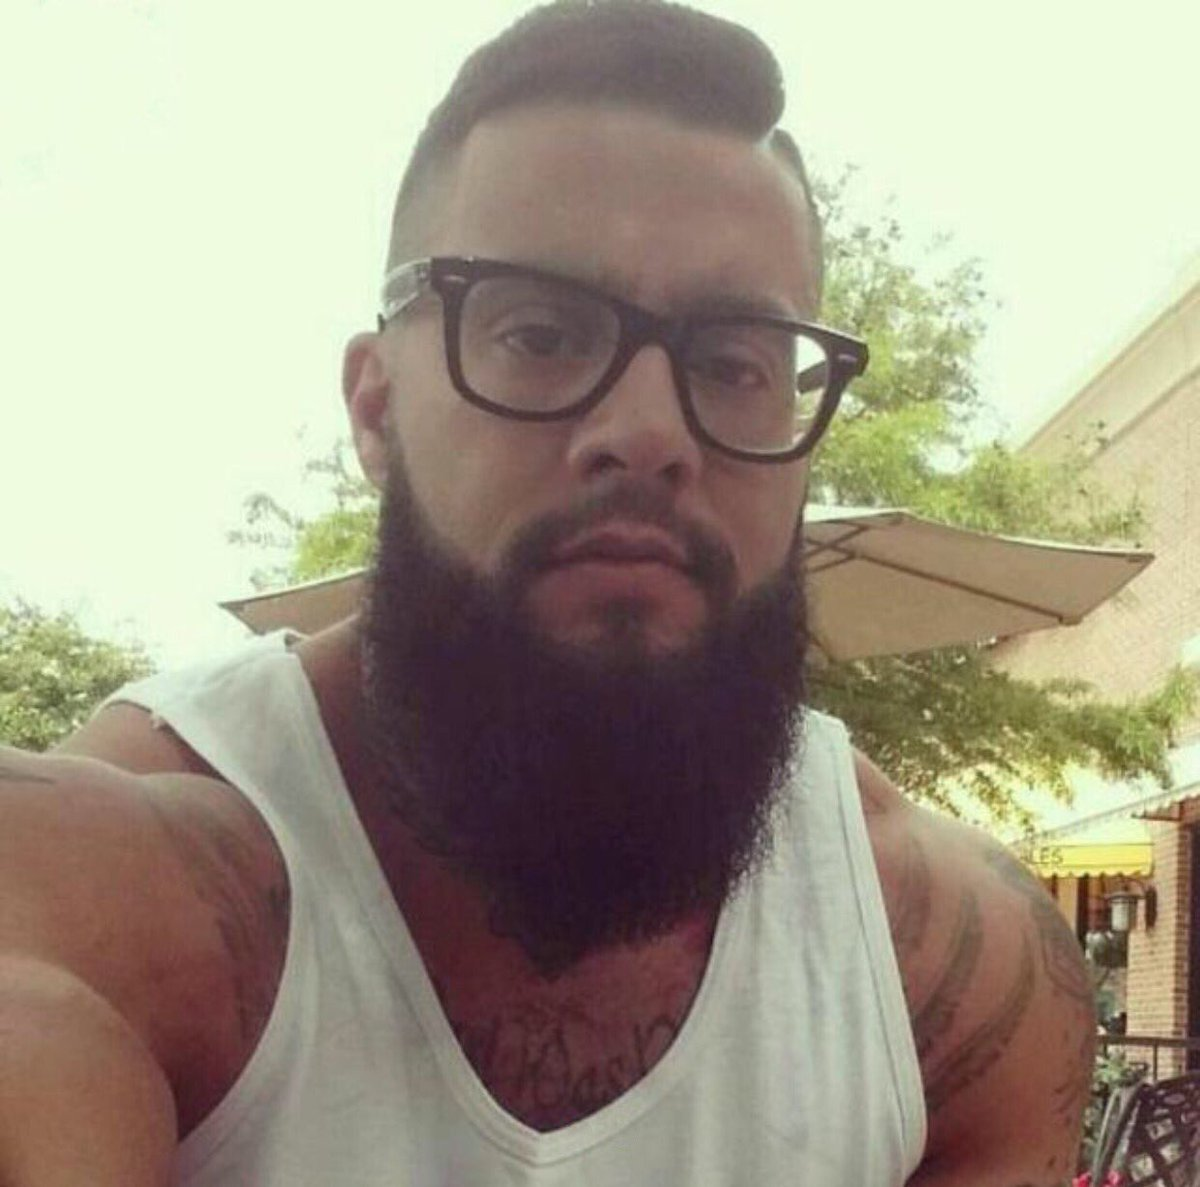 Melbourne friends, I need your help. Does anyone know this guy: Ceasar, 34, 6'6, business owner in Sth Melb area? > https://t.co/nxMmxcEzVH